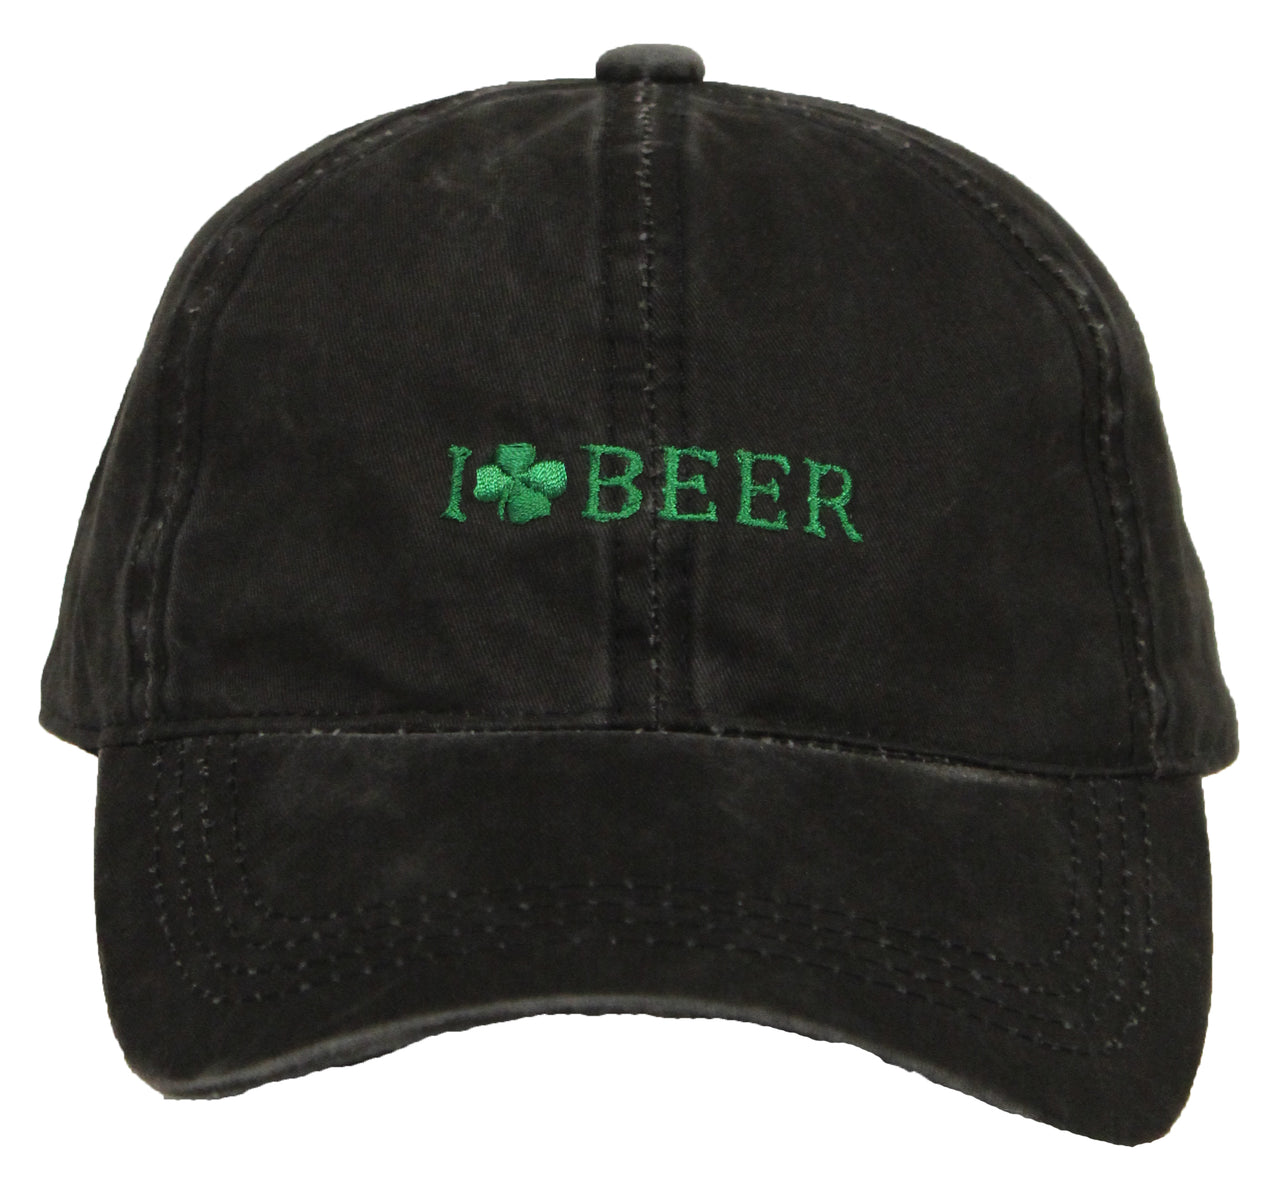 St. Patrick's Day Party Cap - I Love Beer (Black)